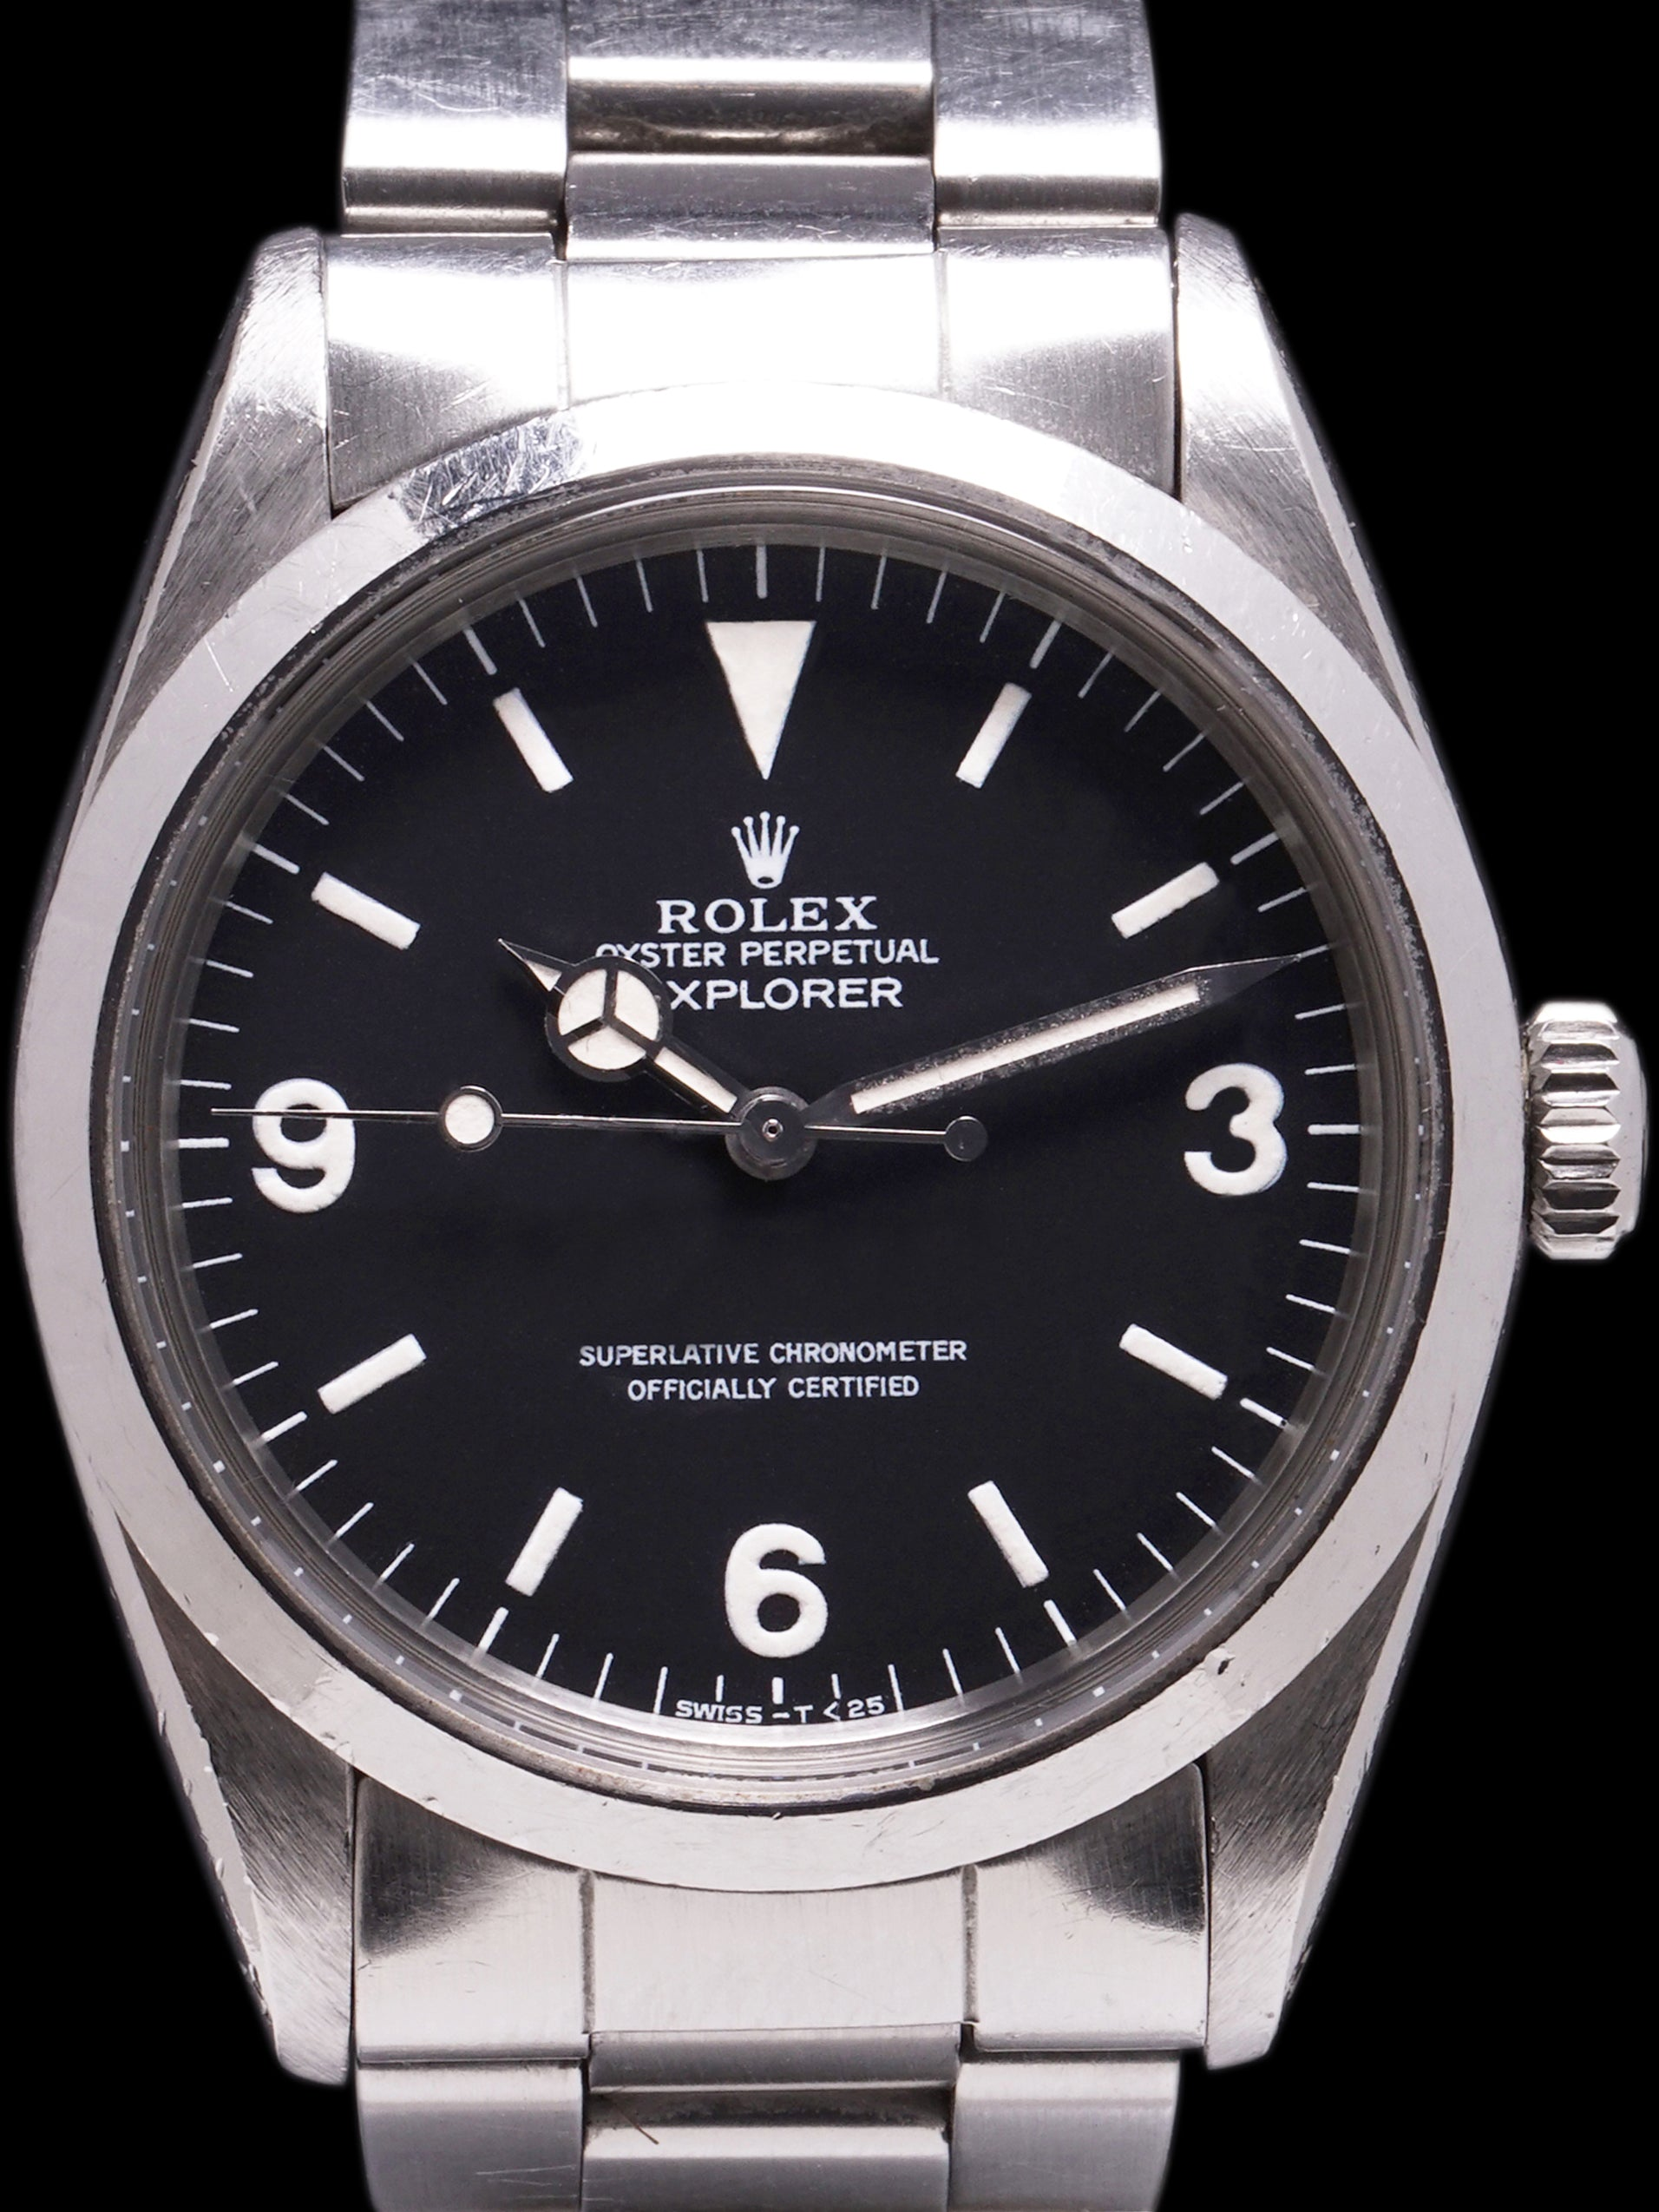 *Unpolished* 1984 Rolex Explorer I (Ref. 1016) W/ Box & Booklet